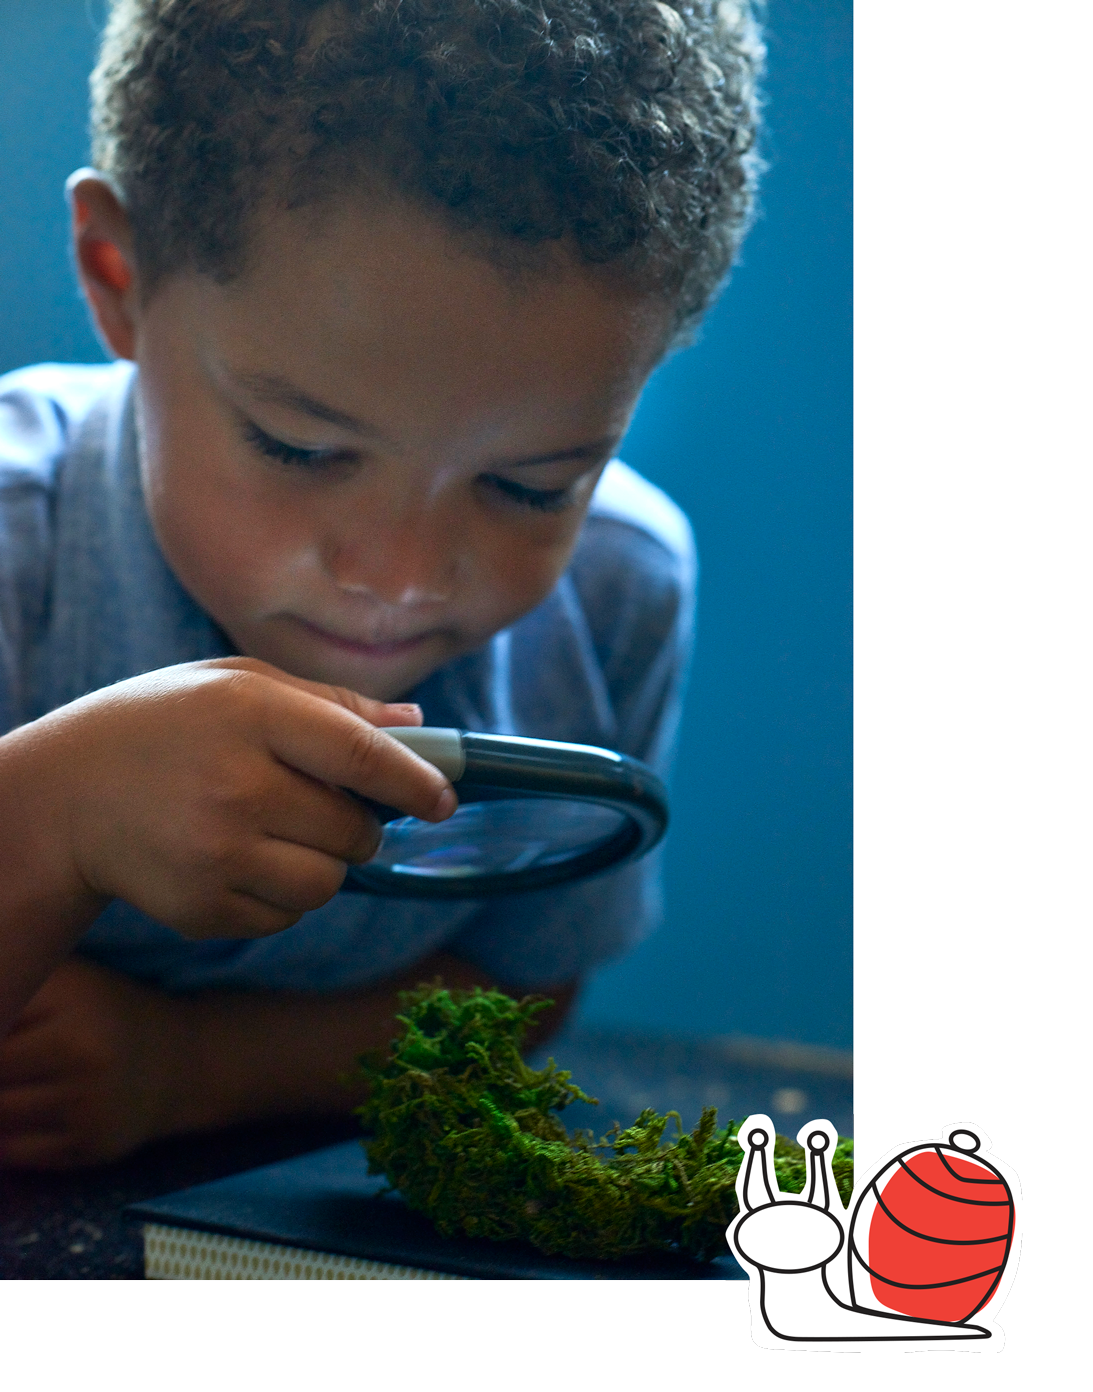 Explore the Village Pre-School - We offer an inspiring Preschool/Pre-K program for children aged 3 to 5 years, with a research based creative curriculum led by highly trained teachers, enabling children to learn through play and discovery.